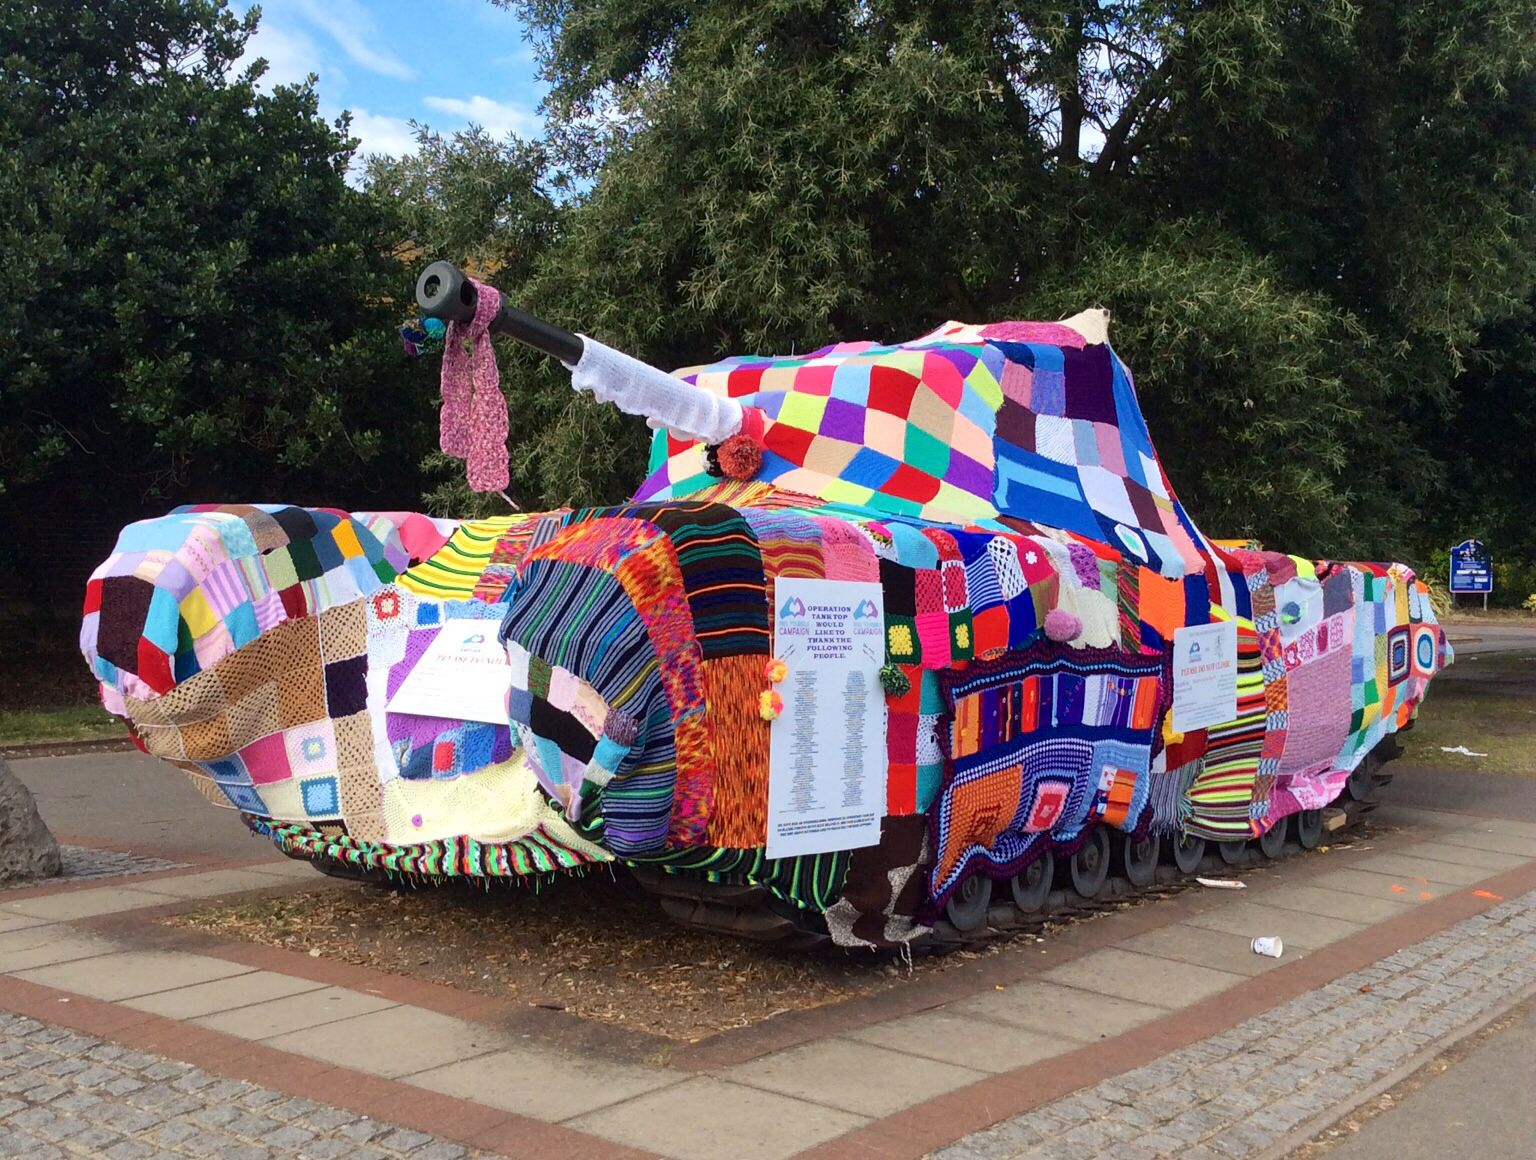 Our yarn bombed Churchill Tank outside the DDay Museum Southsea during Victorious Festival 2014. #operationtanktop to raise awareness for breast and testicular cancer.  Feel Yourself Campaign & Earth Wool & Fire.